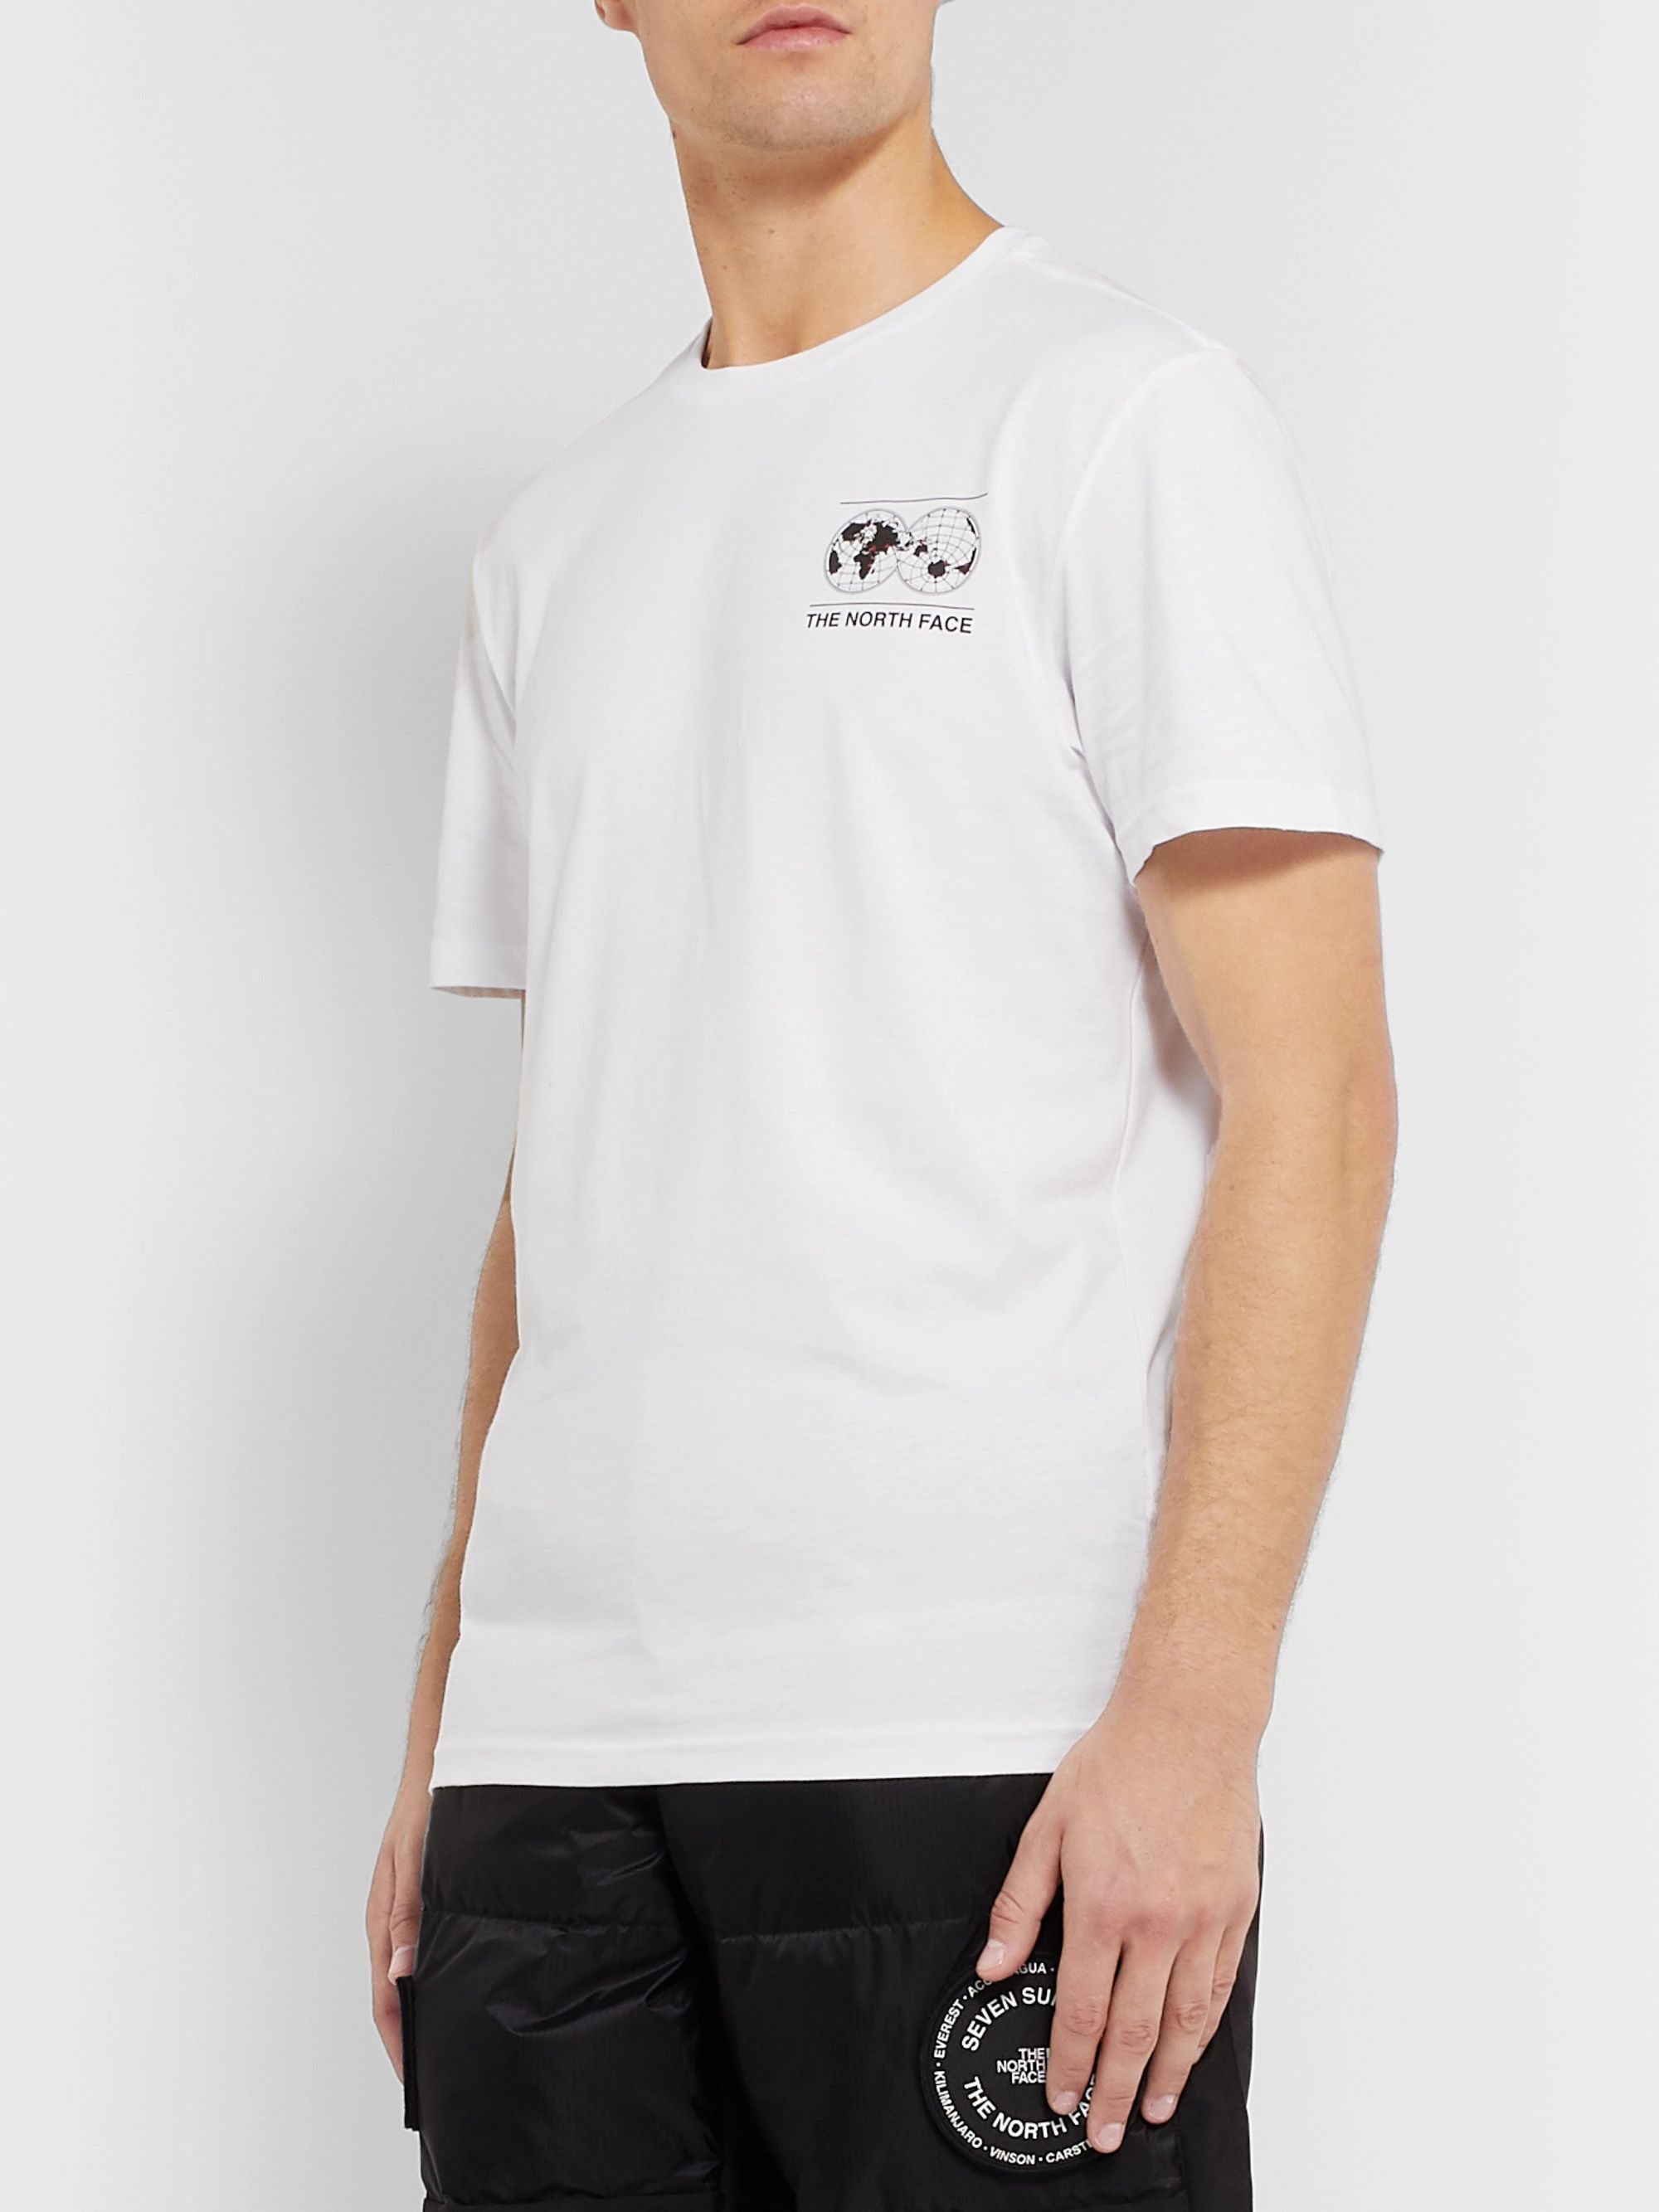 The North Face Printed Cotton-Jersey T-Shirt